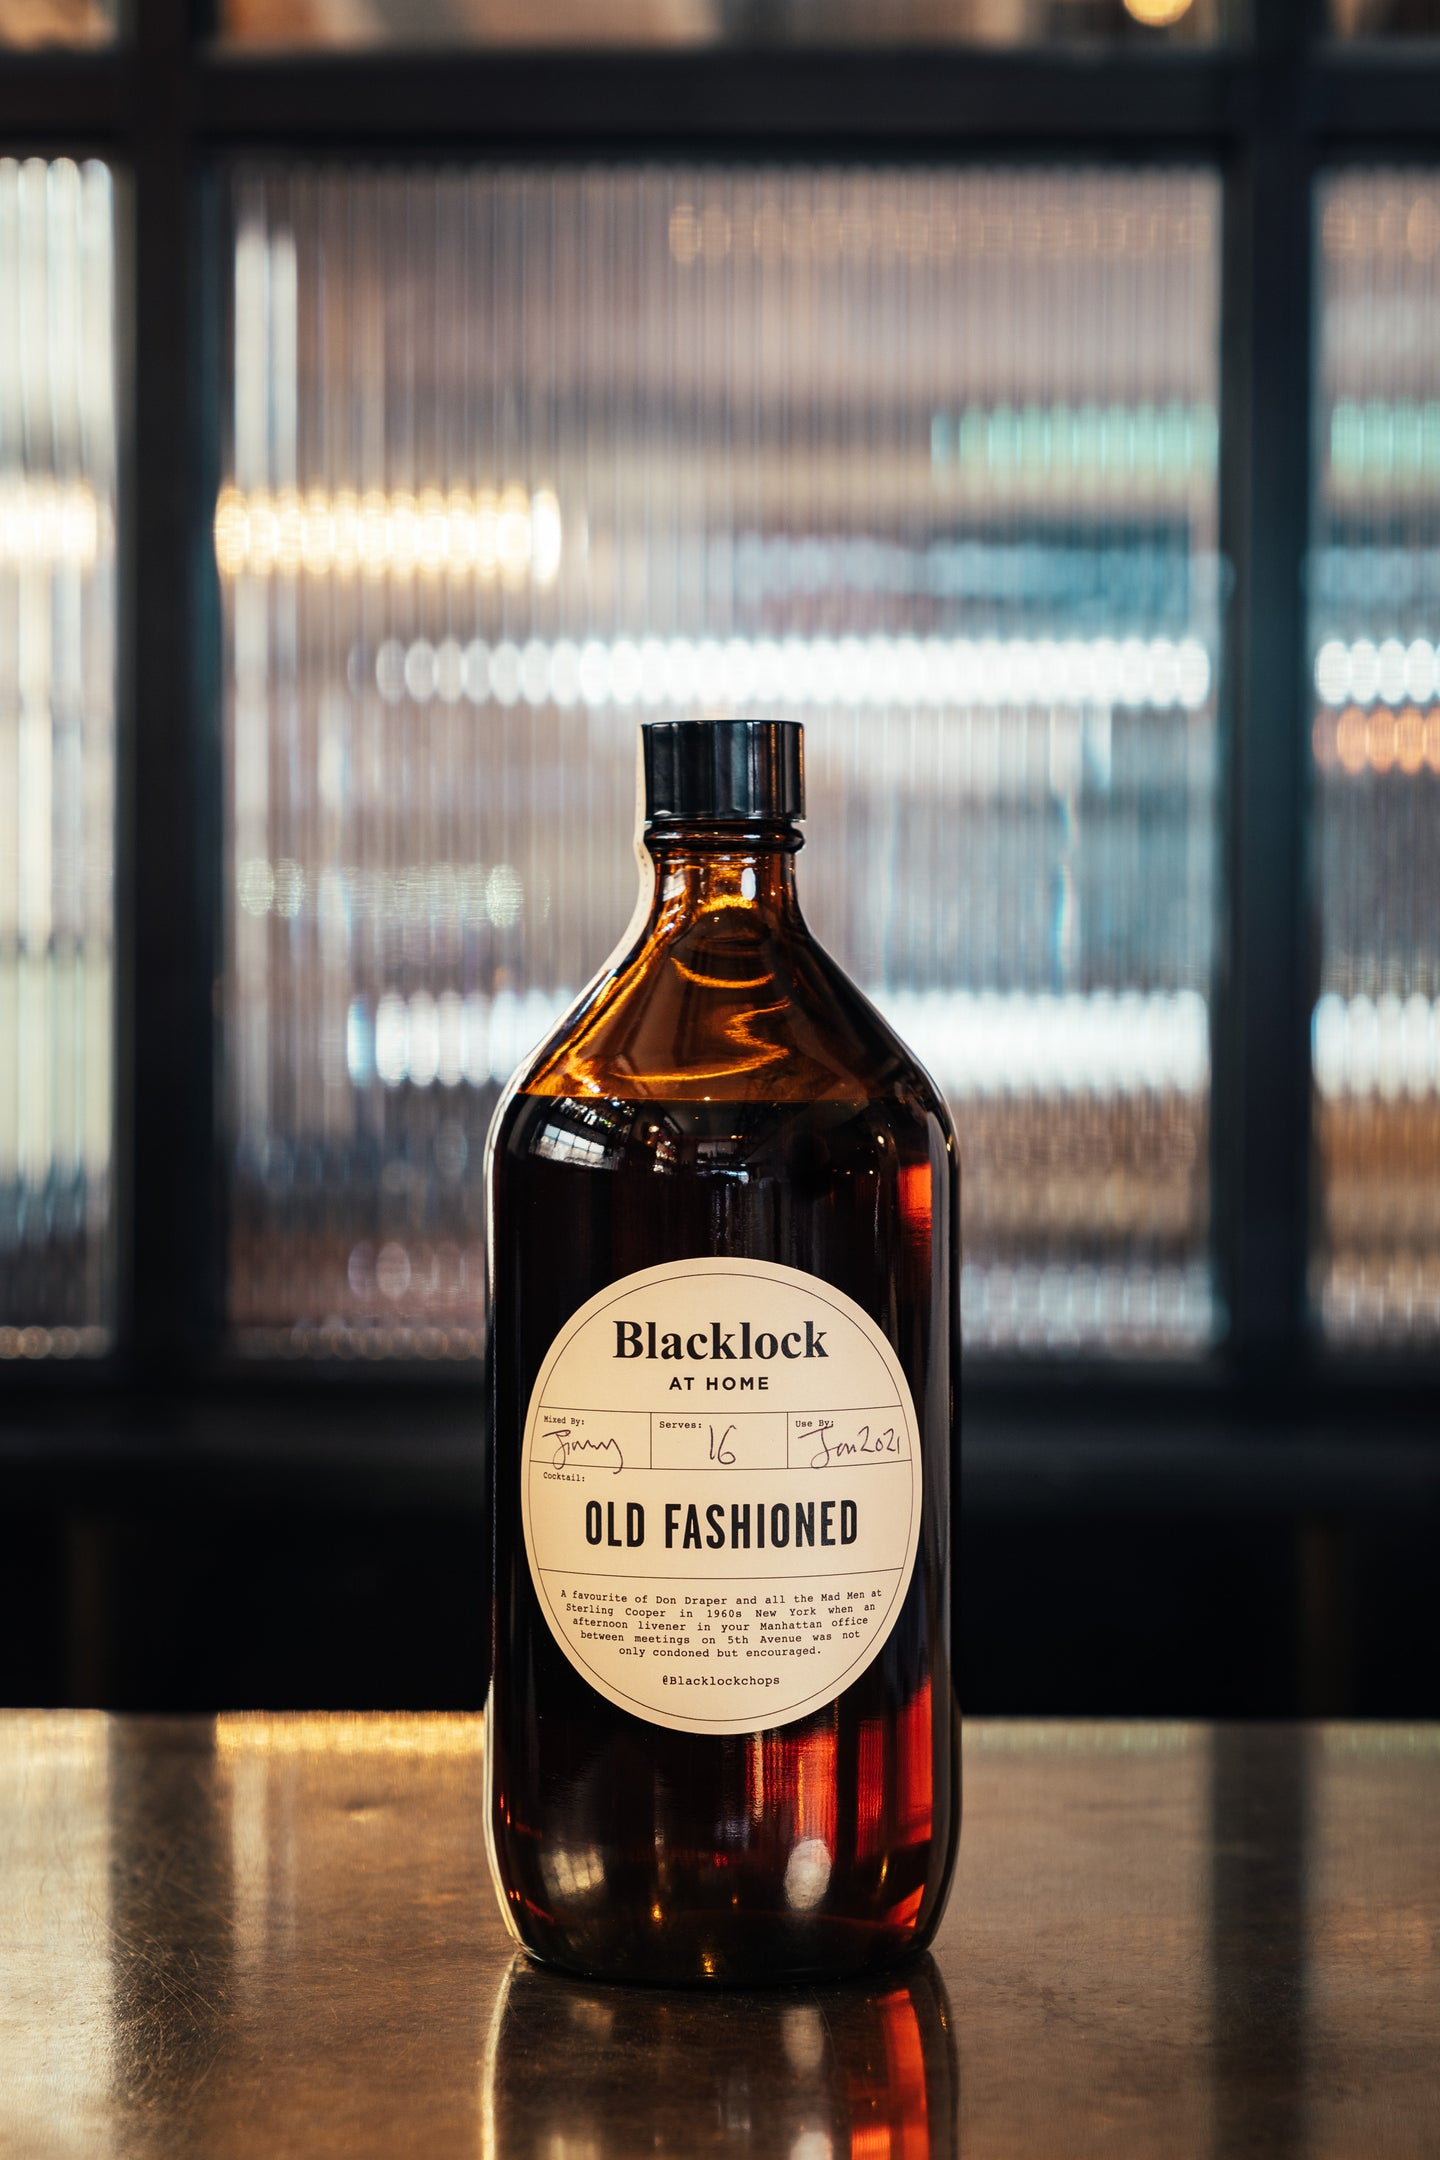 Old Fashioned 1000ml - 16 serves